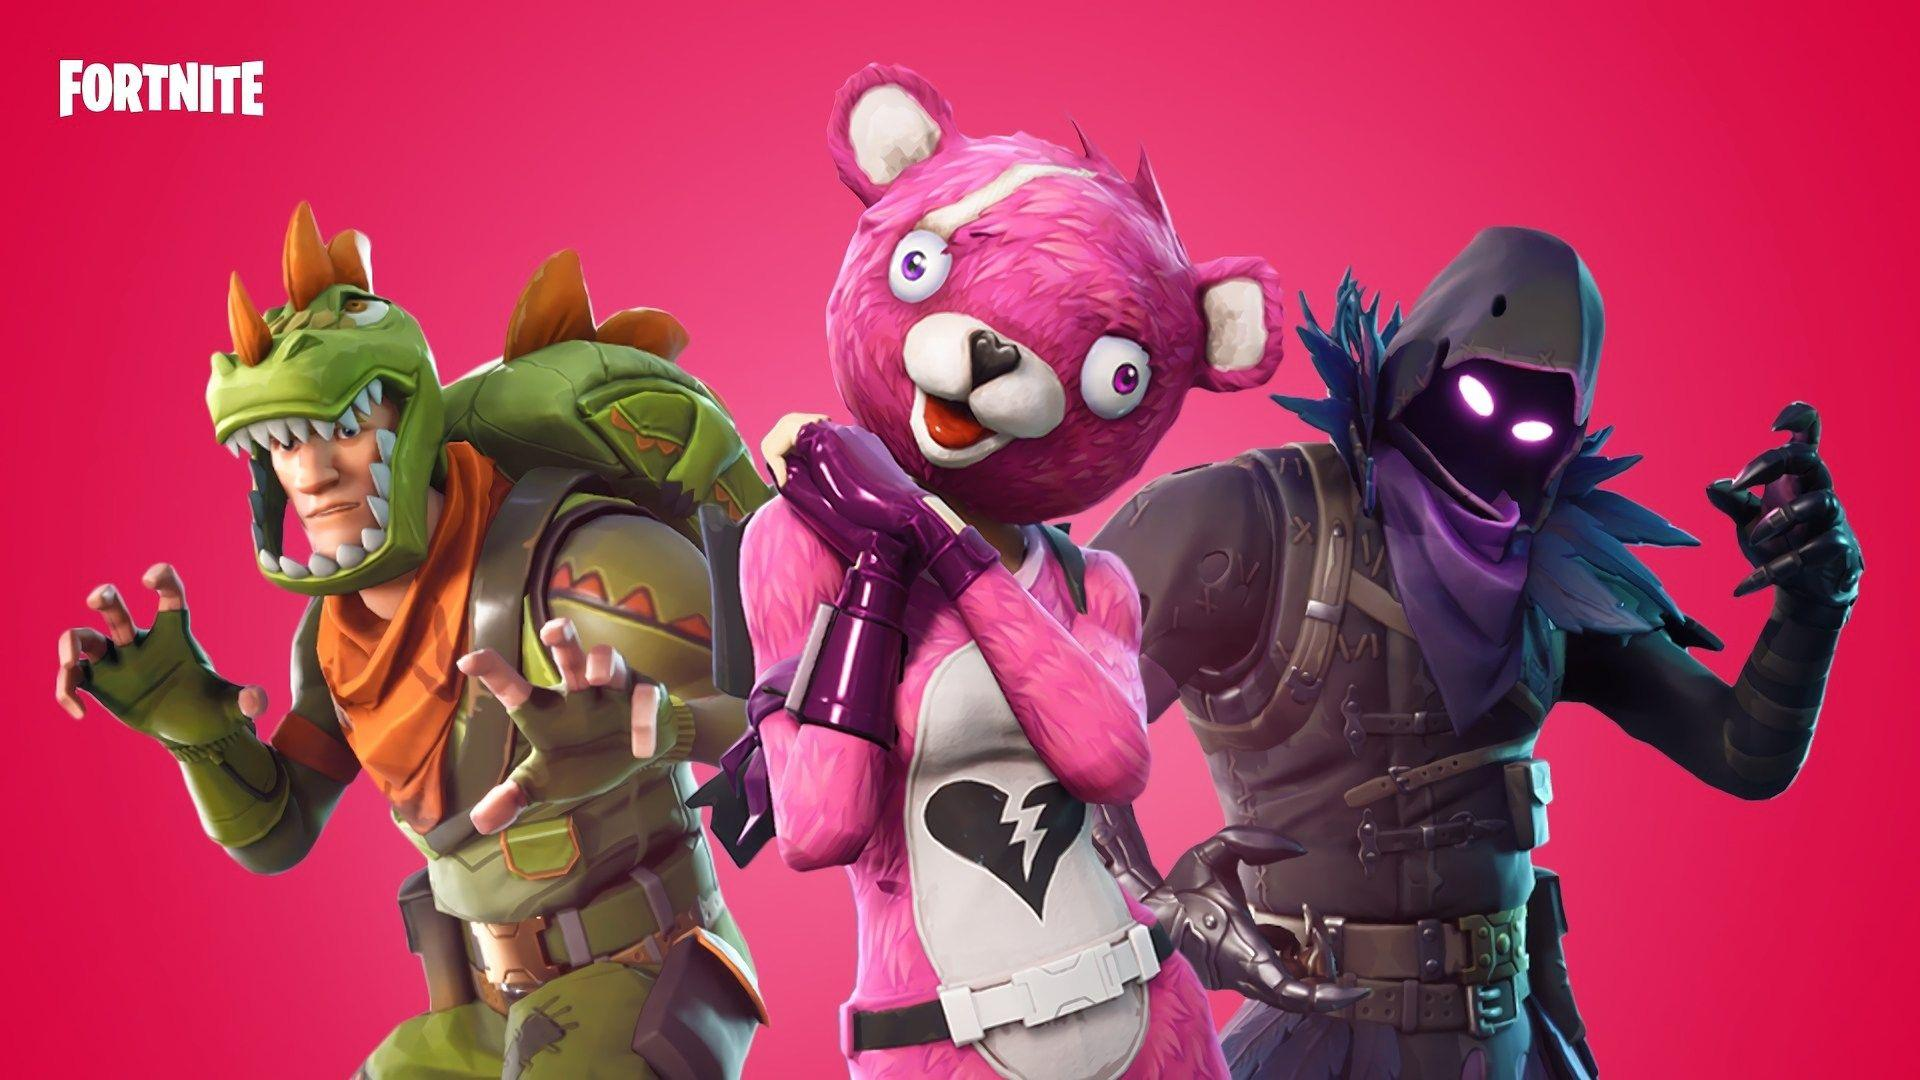 1920 1080 Fortnite Wallpapers